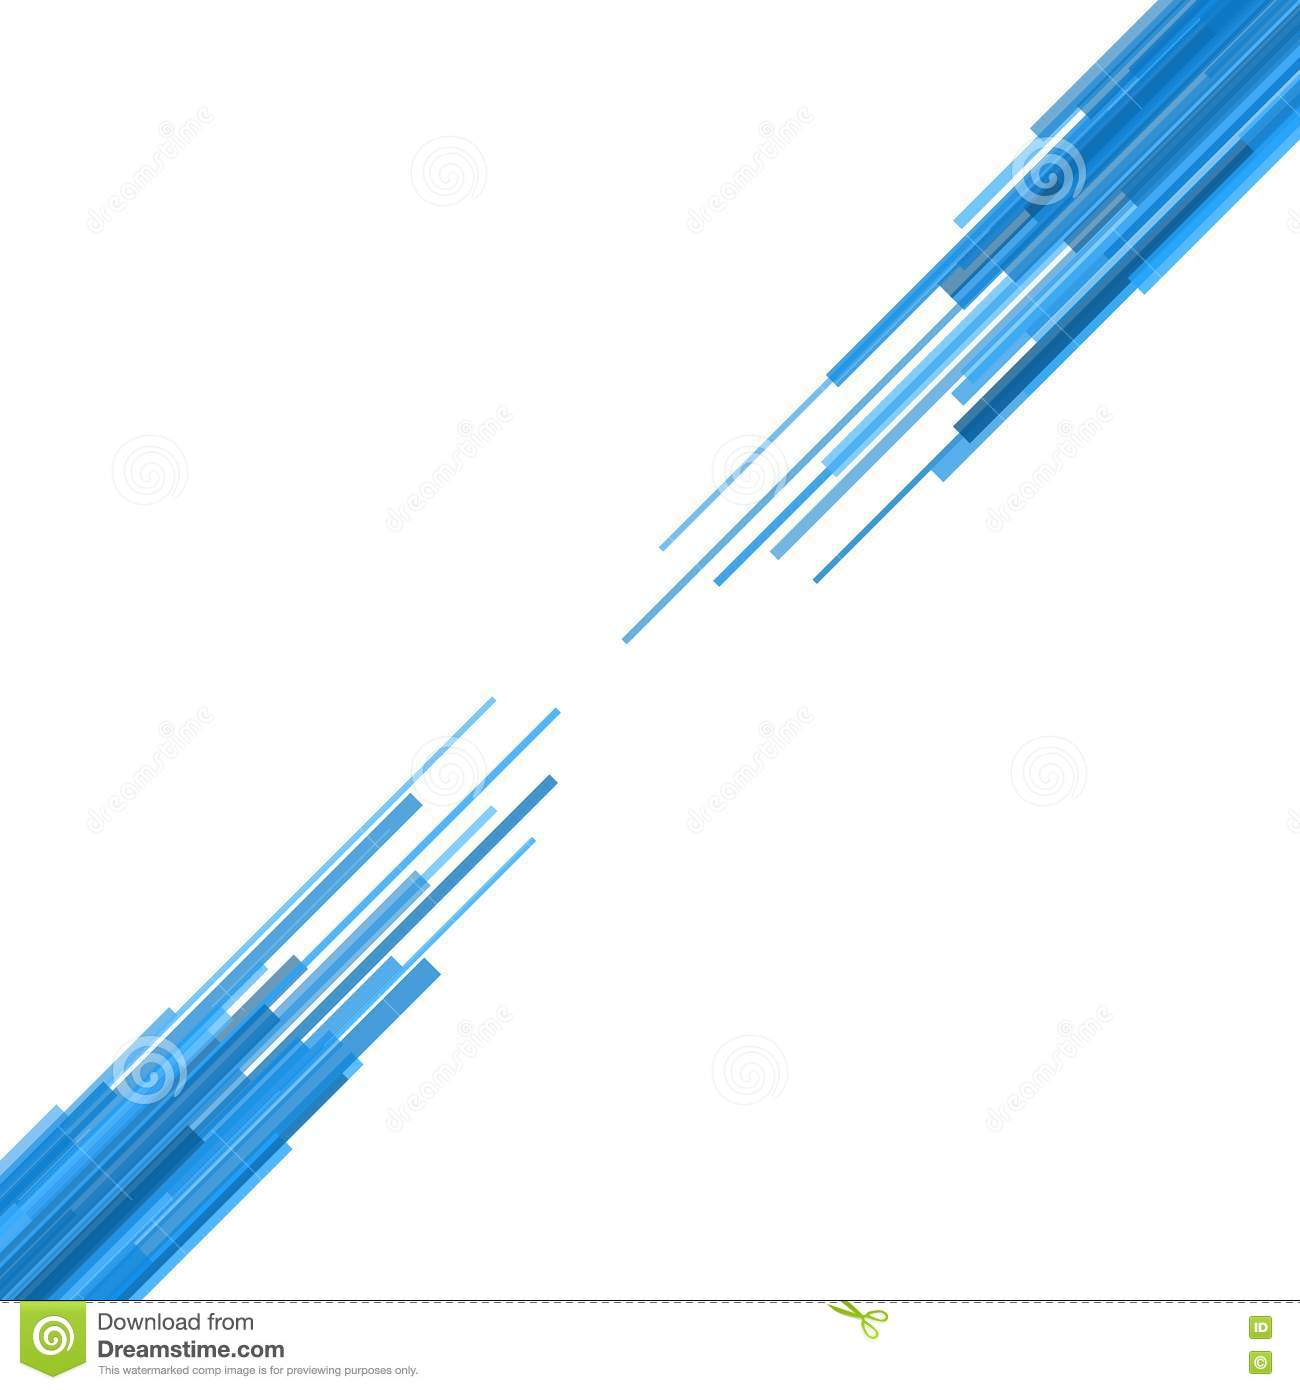 Straight Line Art Vector : Blue straight lines abstract background vector stock